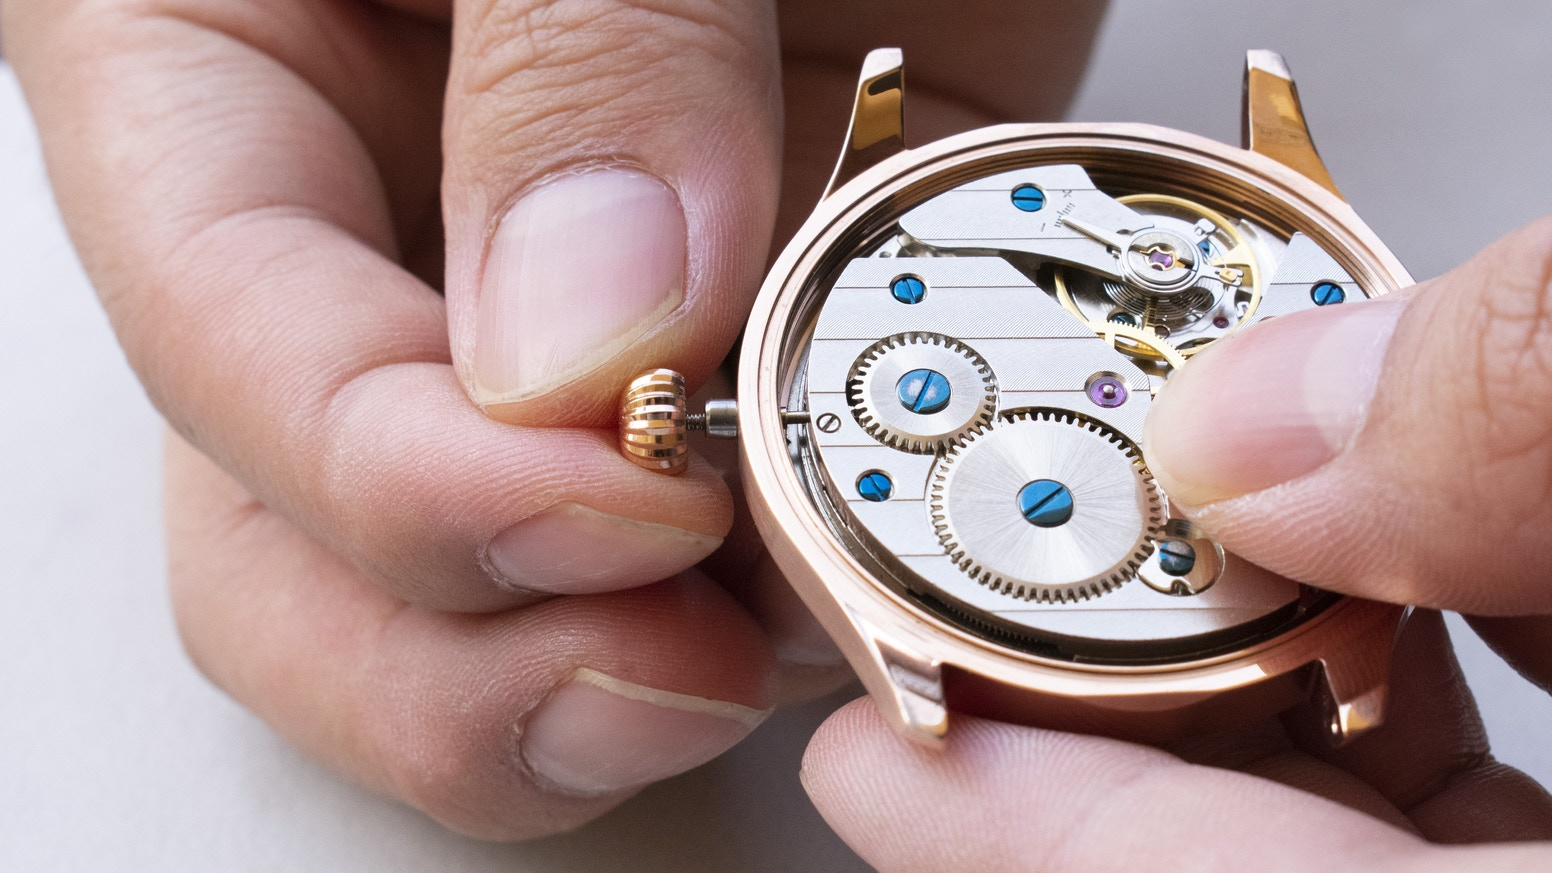 All-in-one kits to learn the craft of watchmaking!